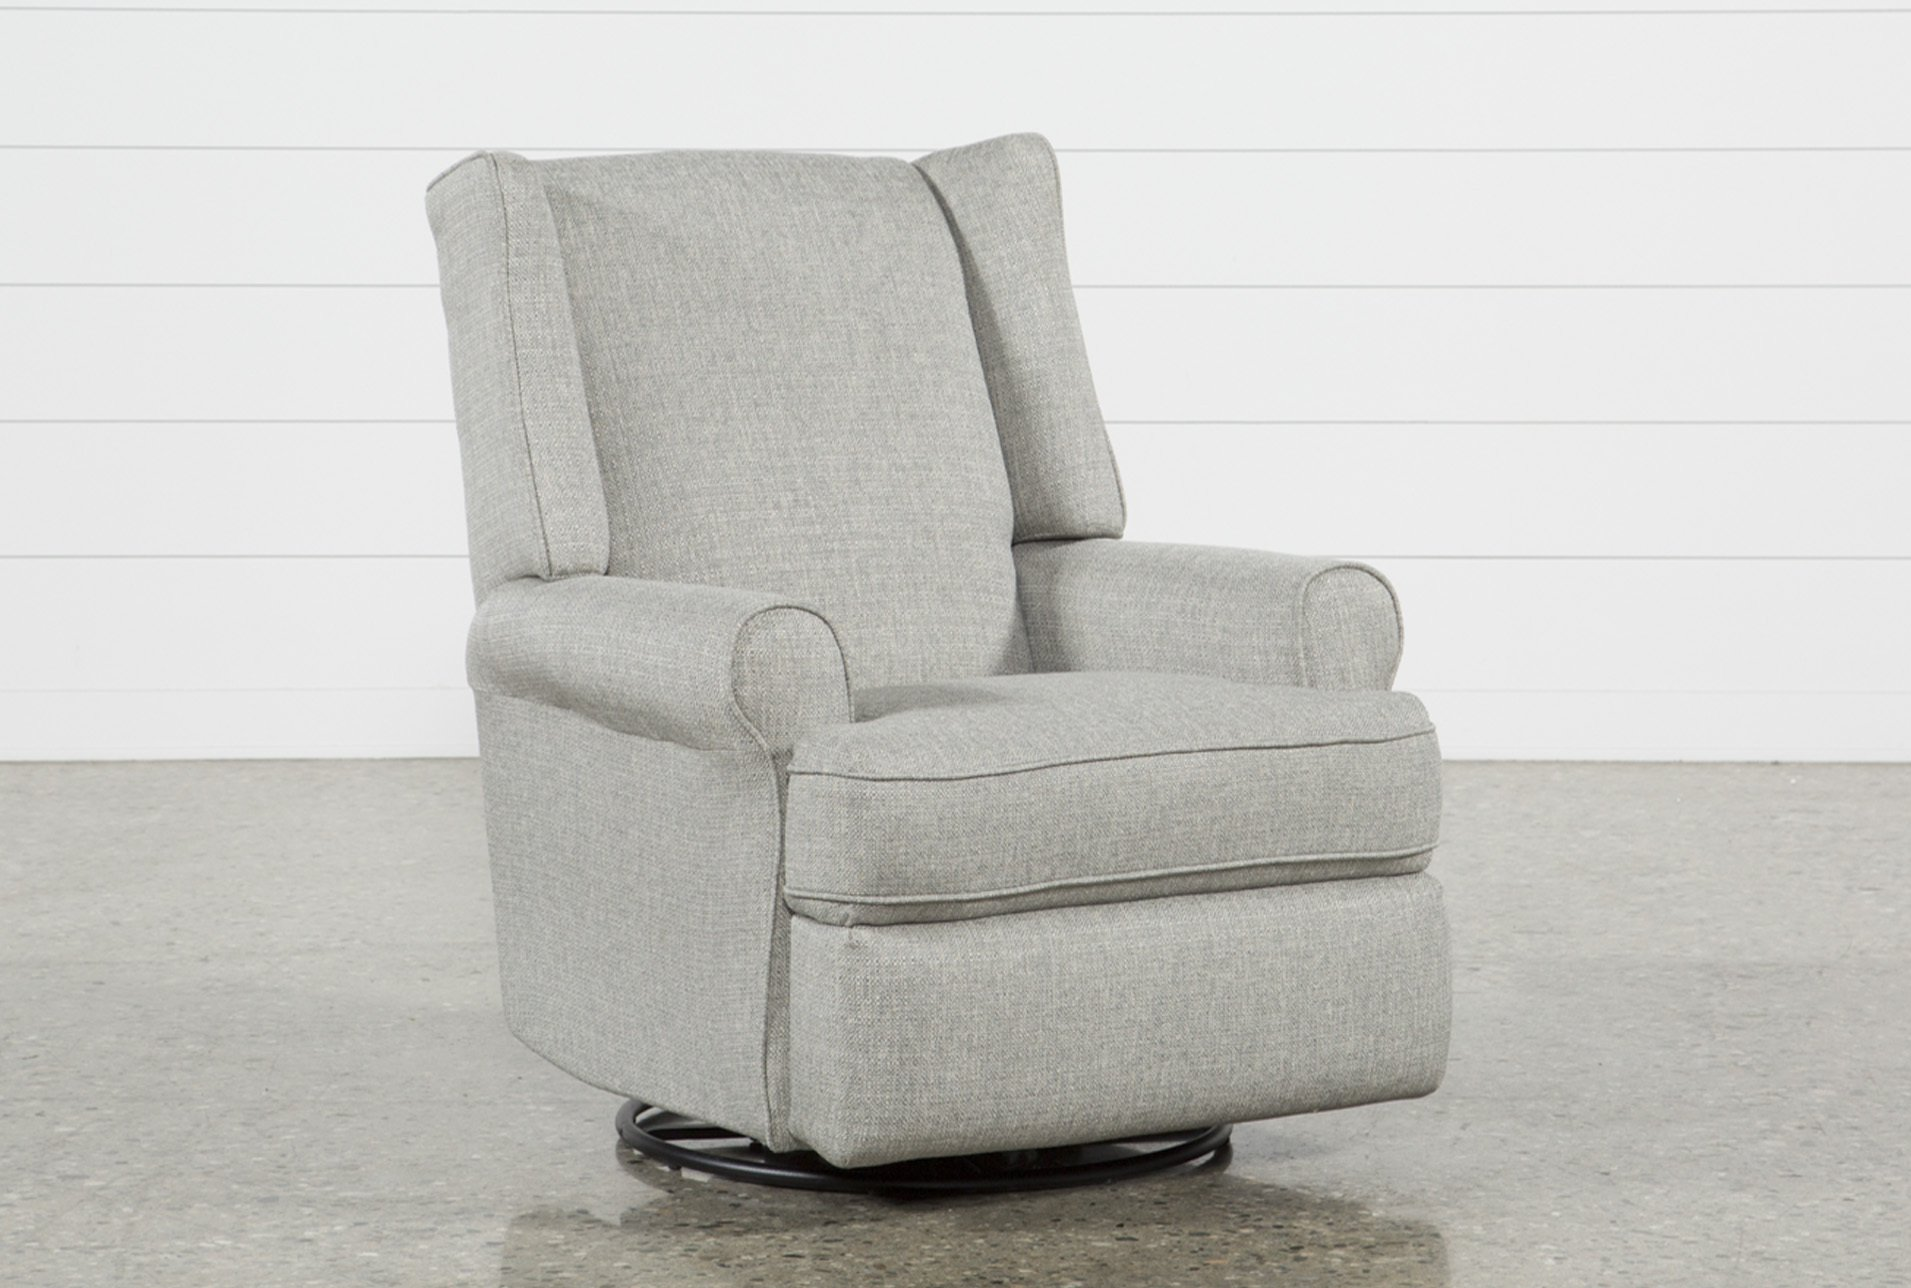 glider recliners mari swivel glider recliner (qty: 1) has been successfully added to your MXIEWPJ